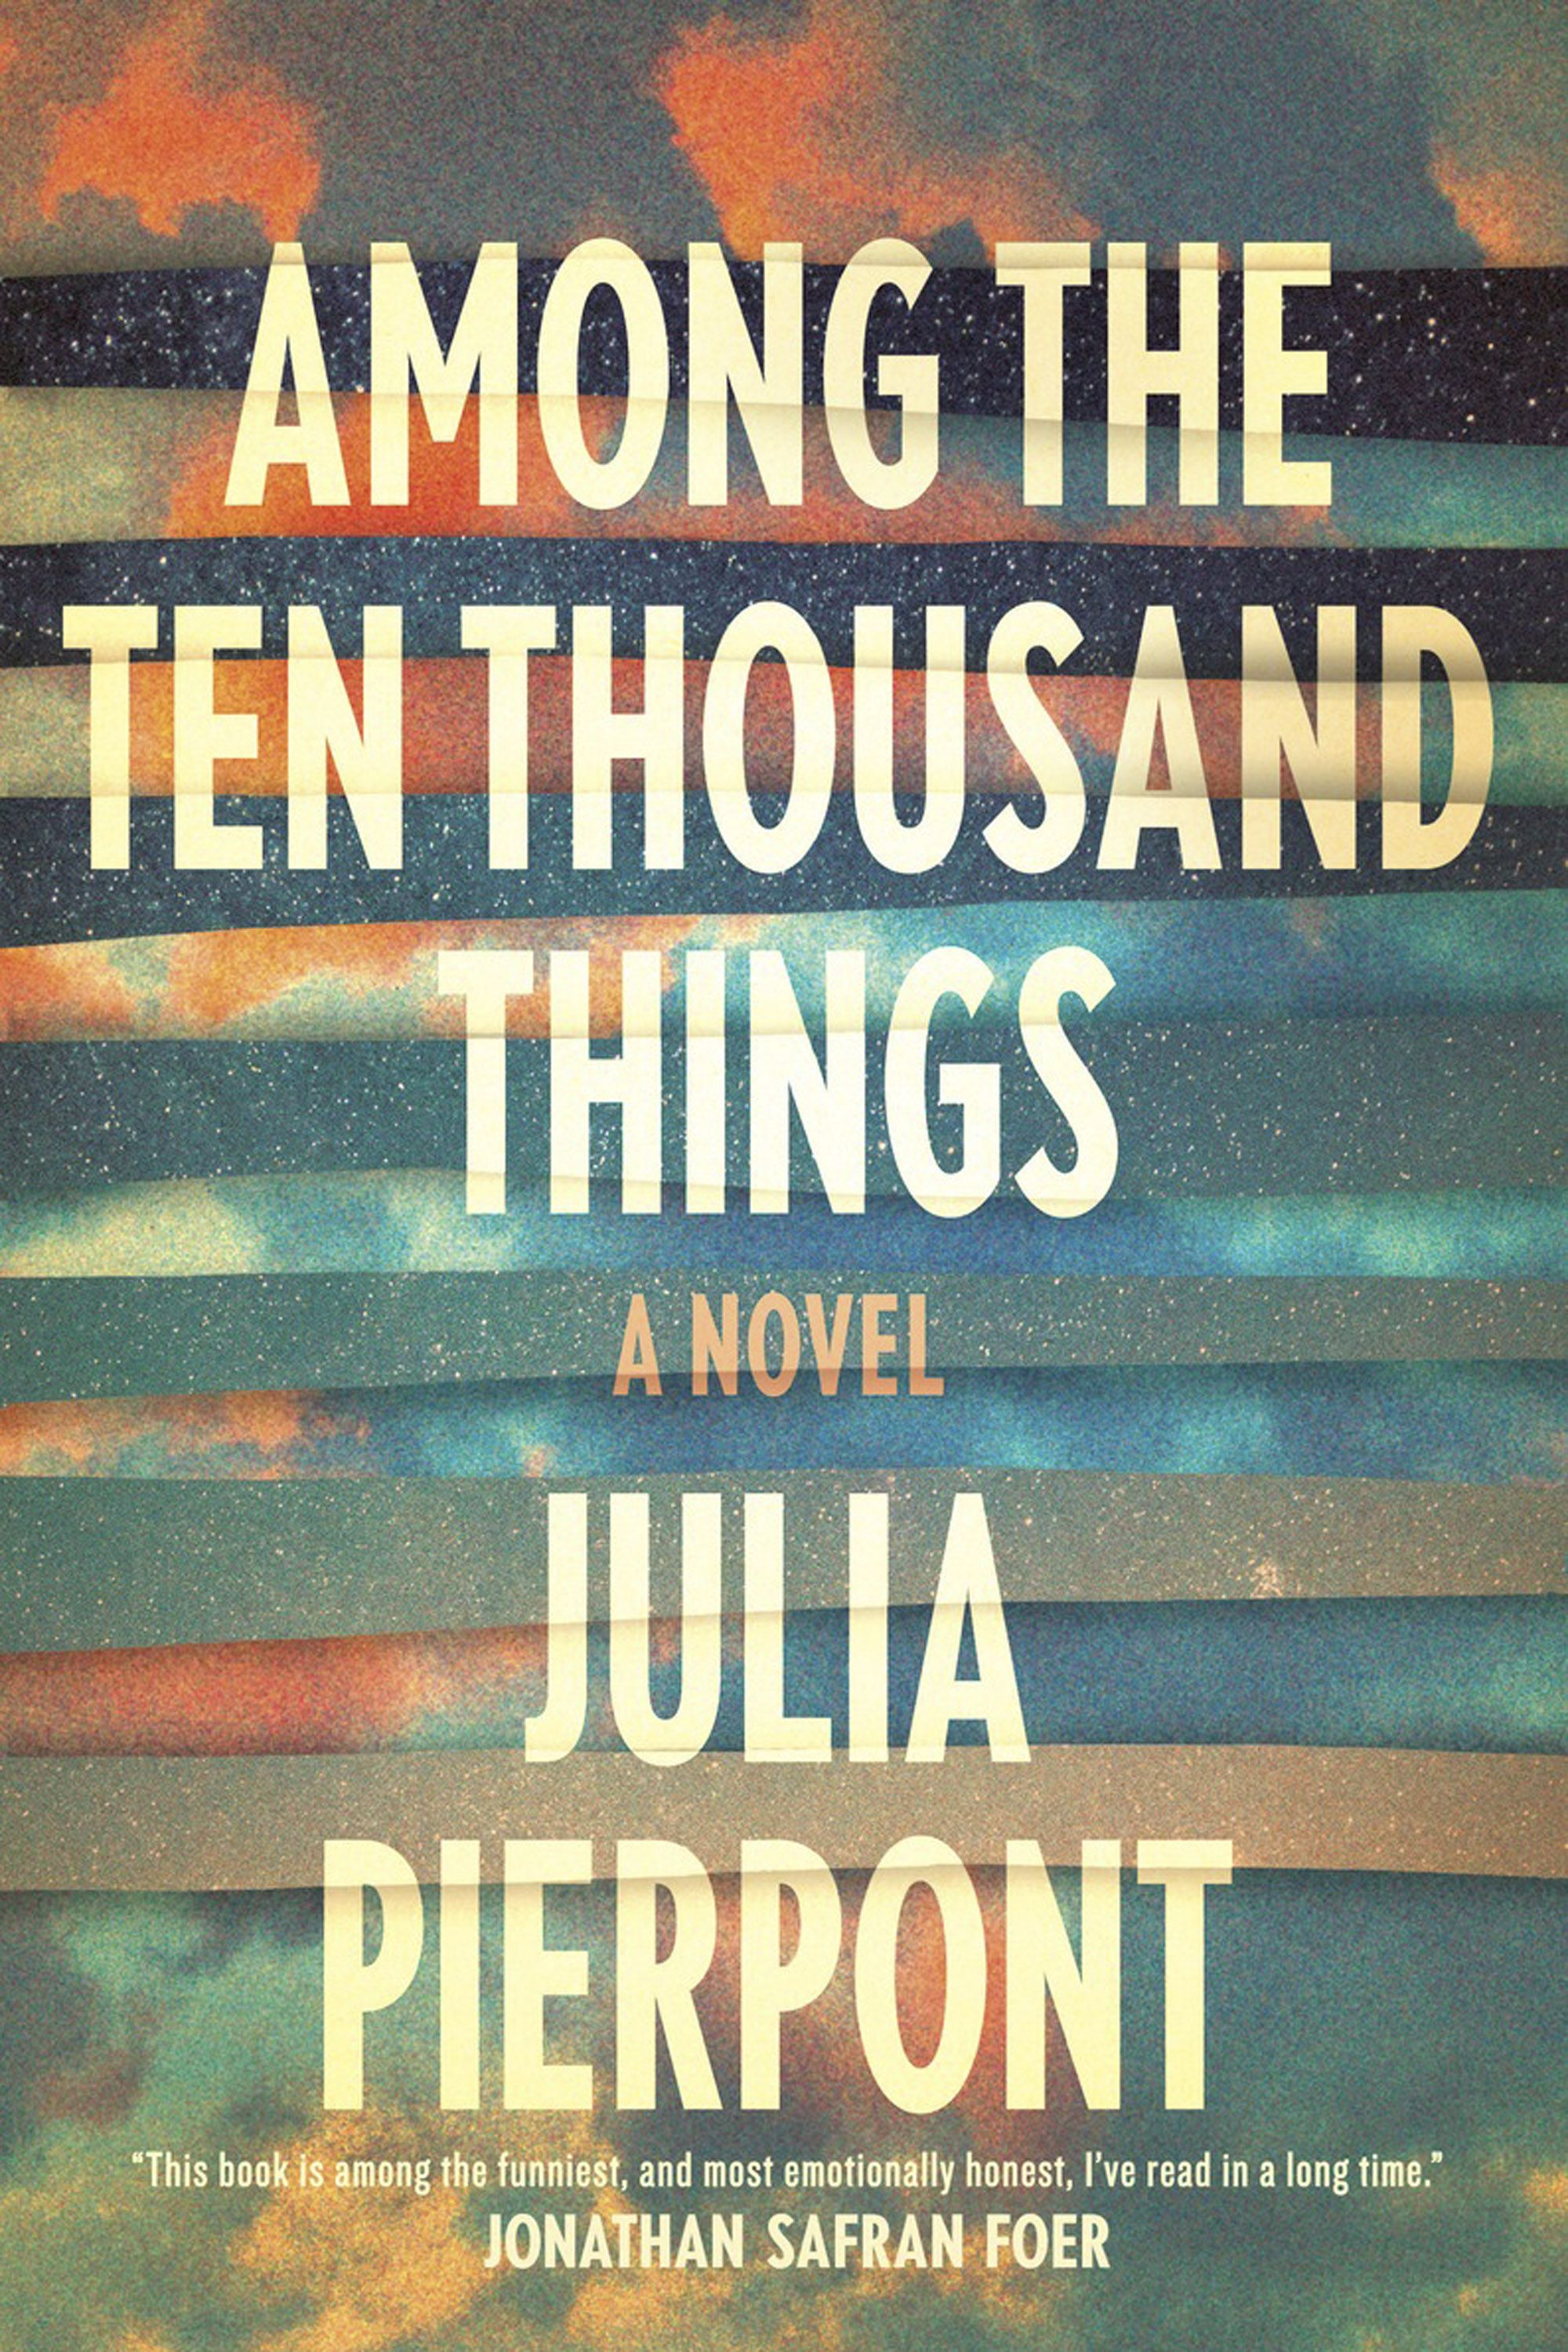 "<p><em>Among The Ten Thousand Things</em> by Julia Pierpont, $18, <a href=""http://www.amazon.com/Among-Ten-Thousand-Things-Novel/dp/0812995228"" target=""_blank"">amazon.com</a>. </p>"